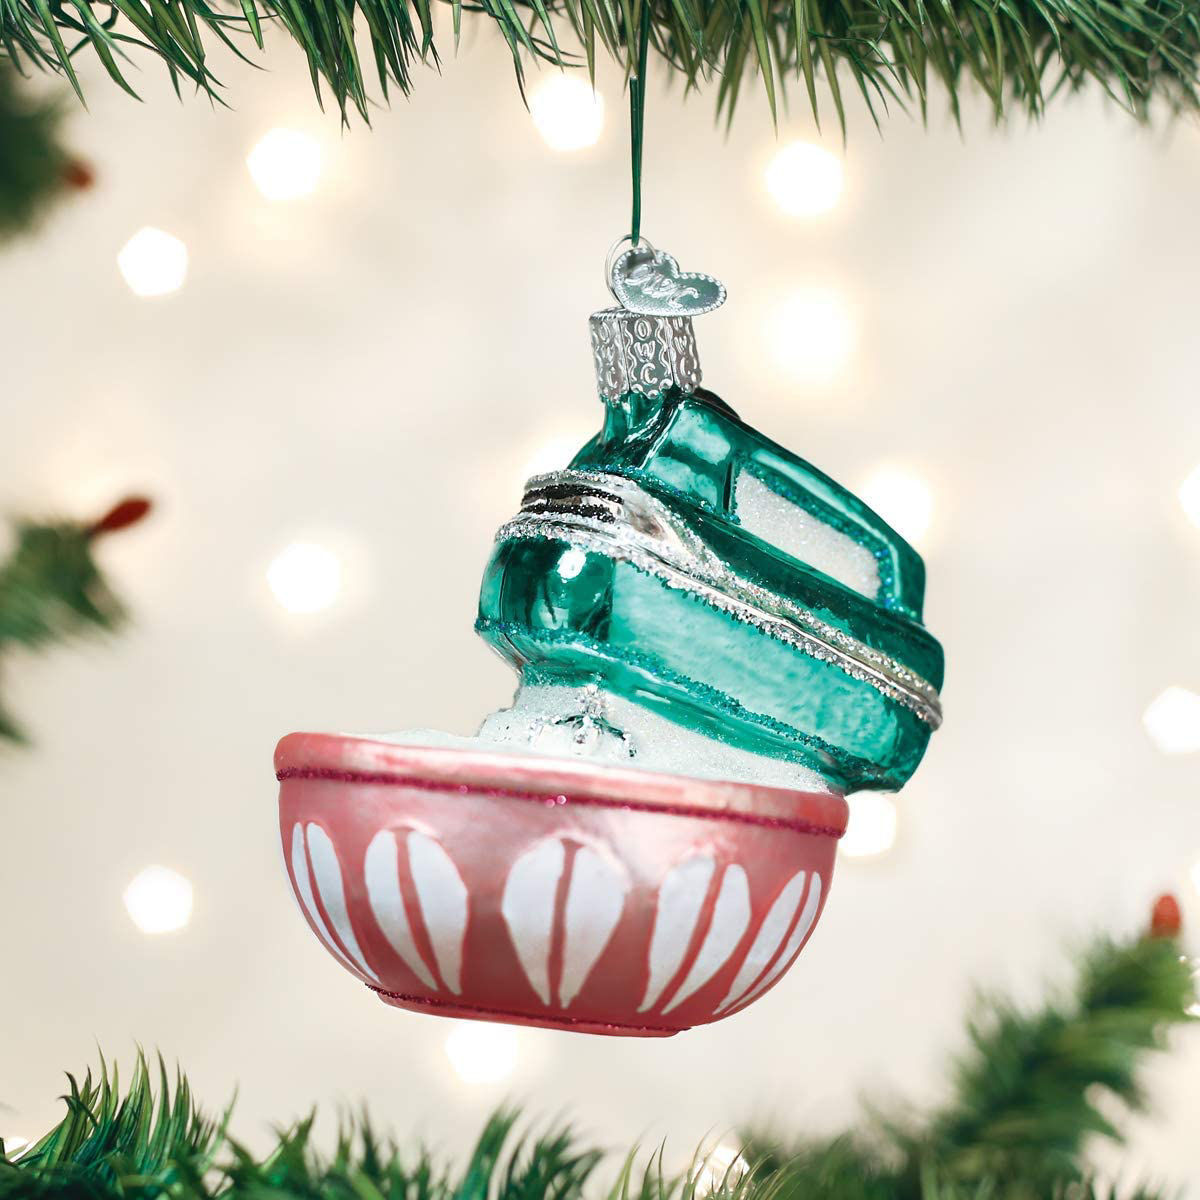 Hand Mixer Ornament by Old World Christmas